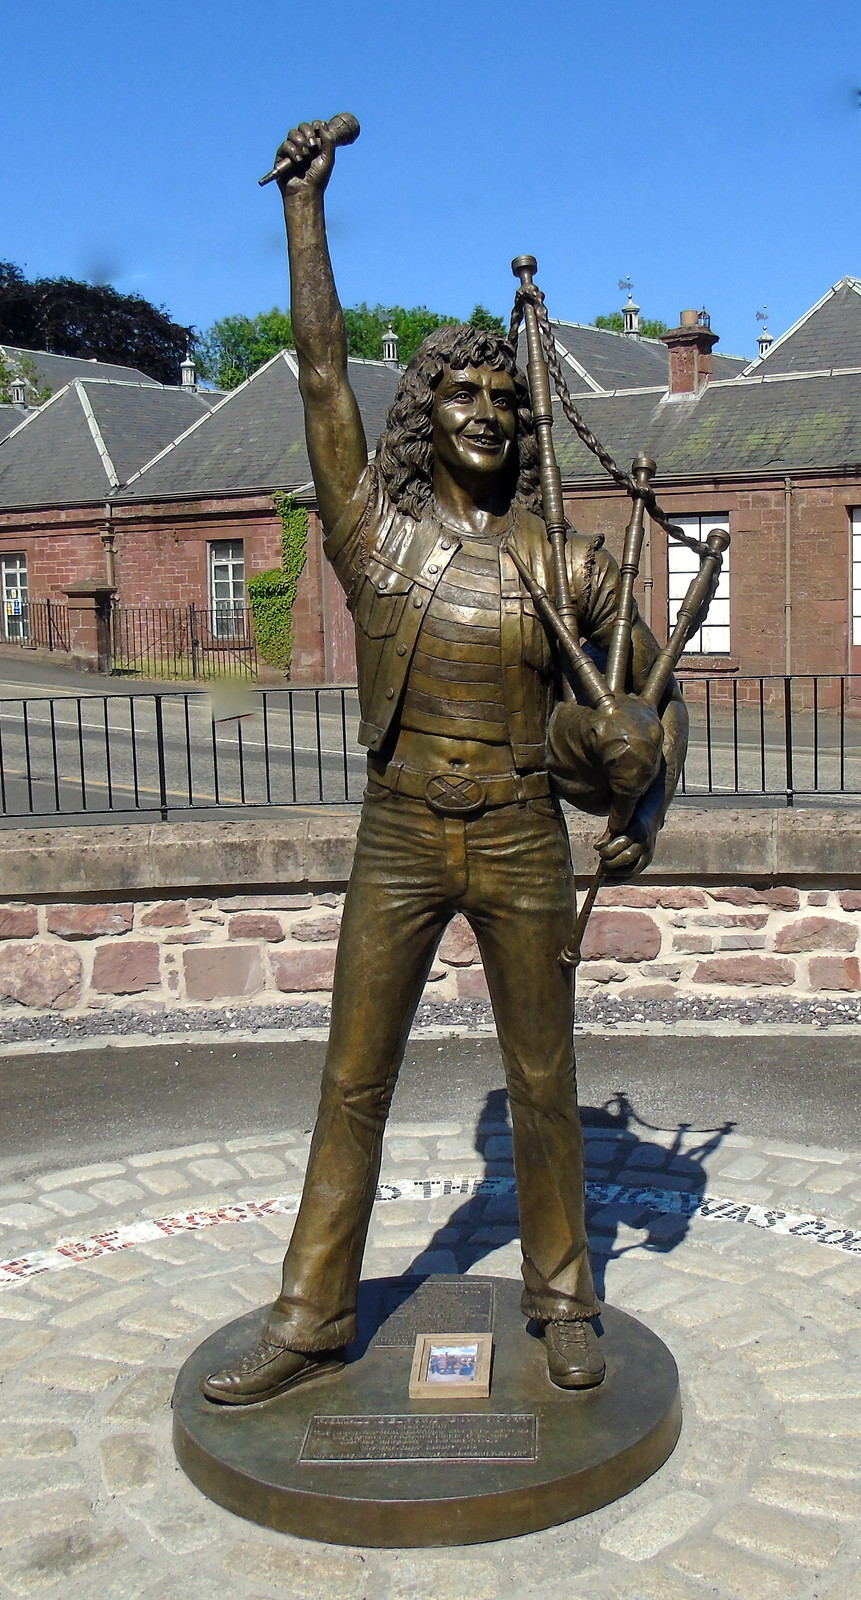 Bon Scott statue Kirriemuir